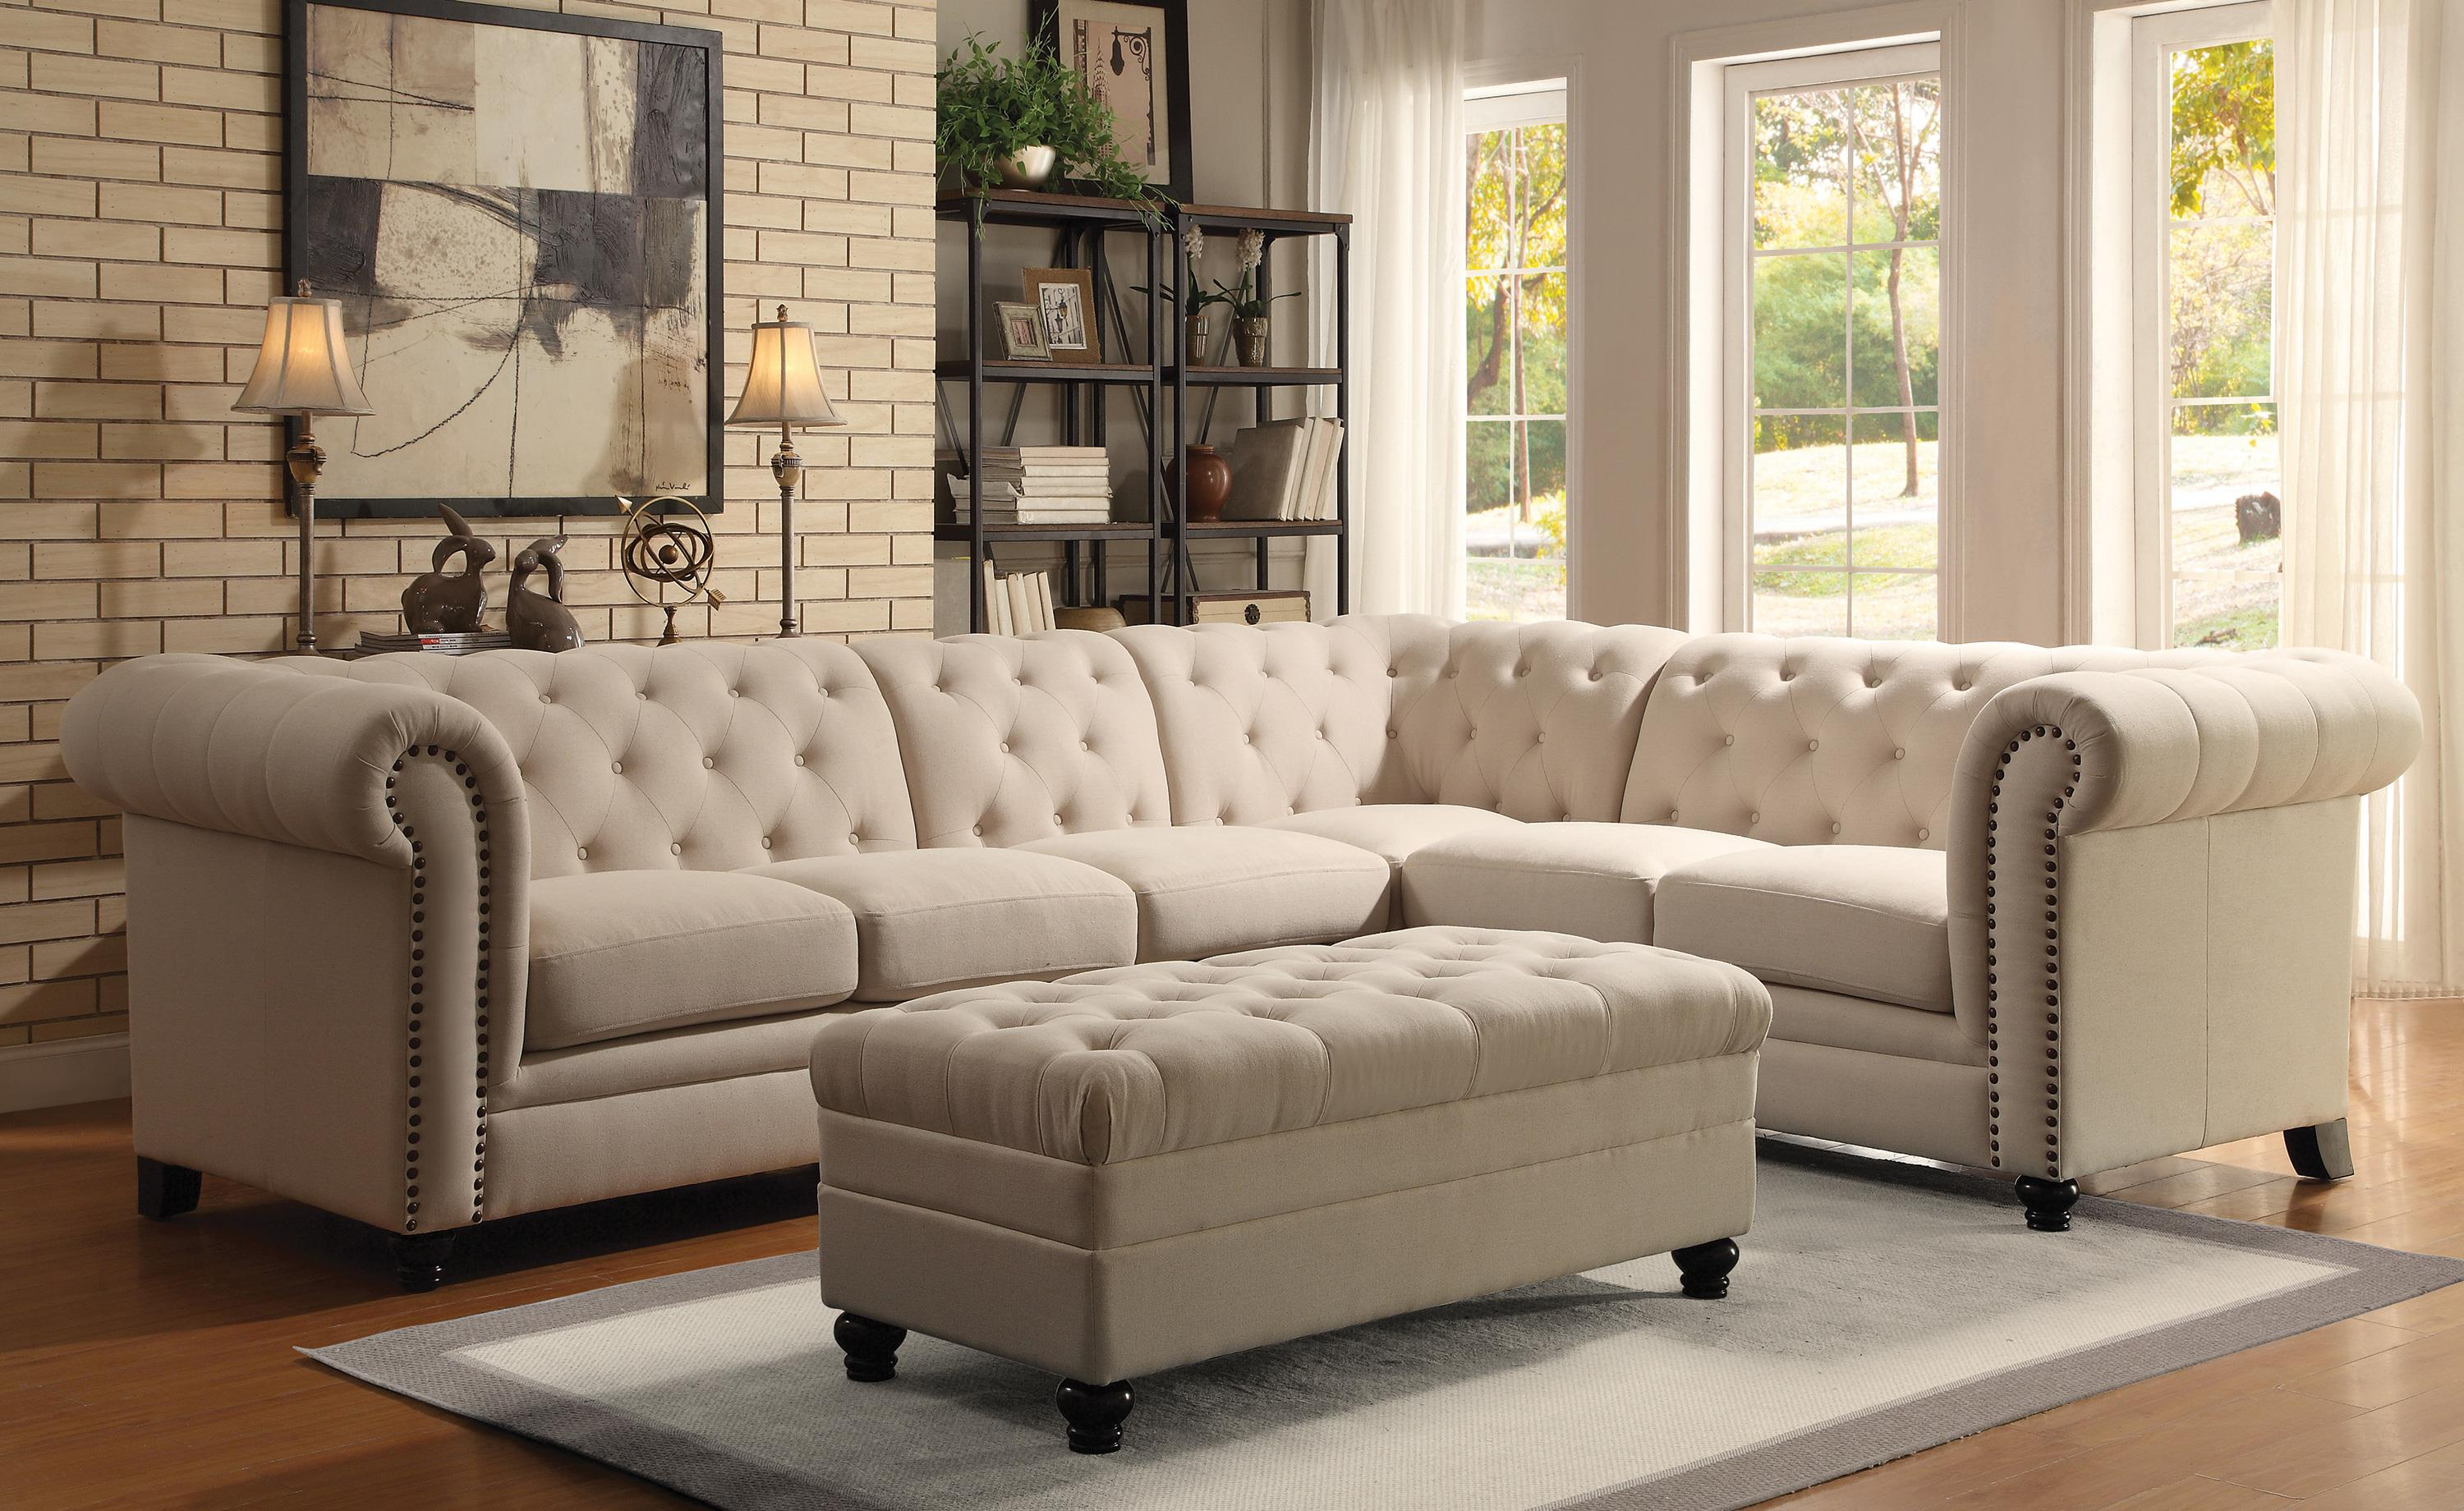 Button tufted sectional sofa with armless chair by coaster for Sectional sofa mor furniture